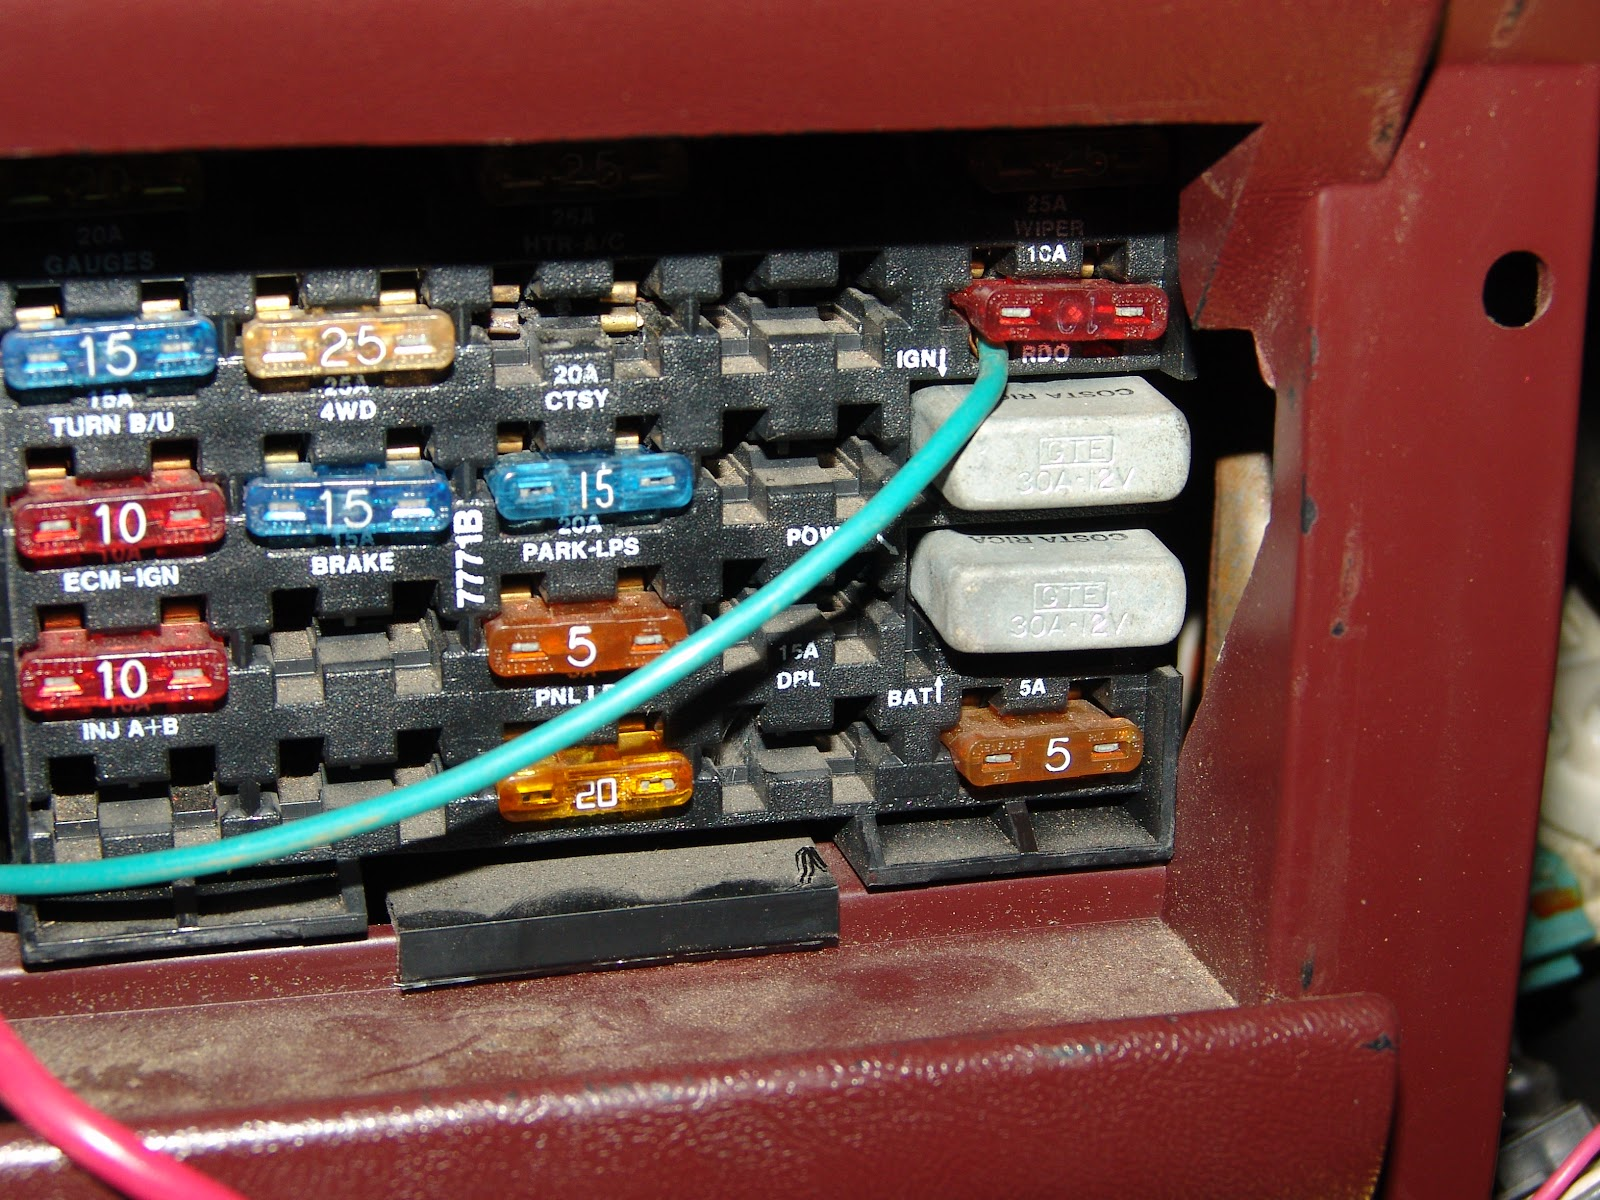 1993 Chevy K1500 Wiring Diagram Water Cycle Worksheet Blank 1500 Fuse Panel Location Get Free Image About